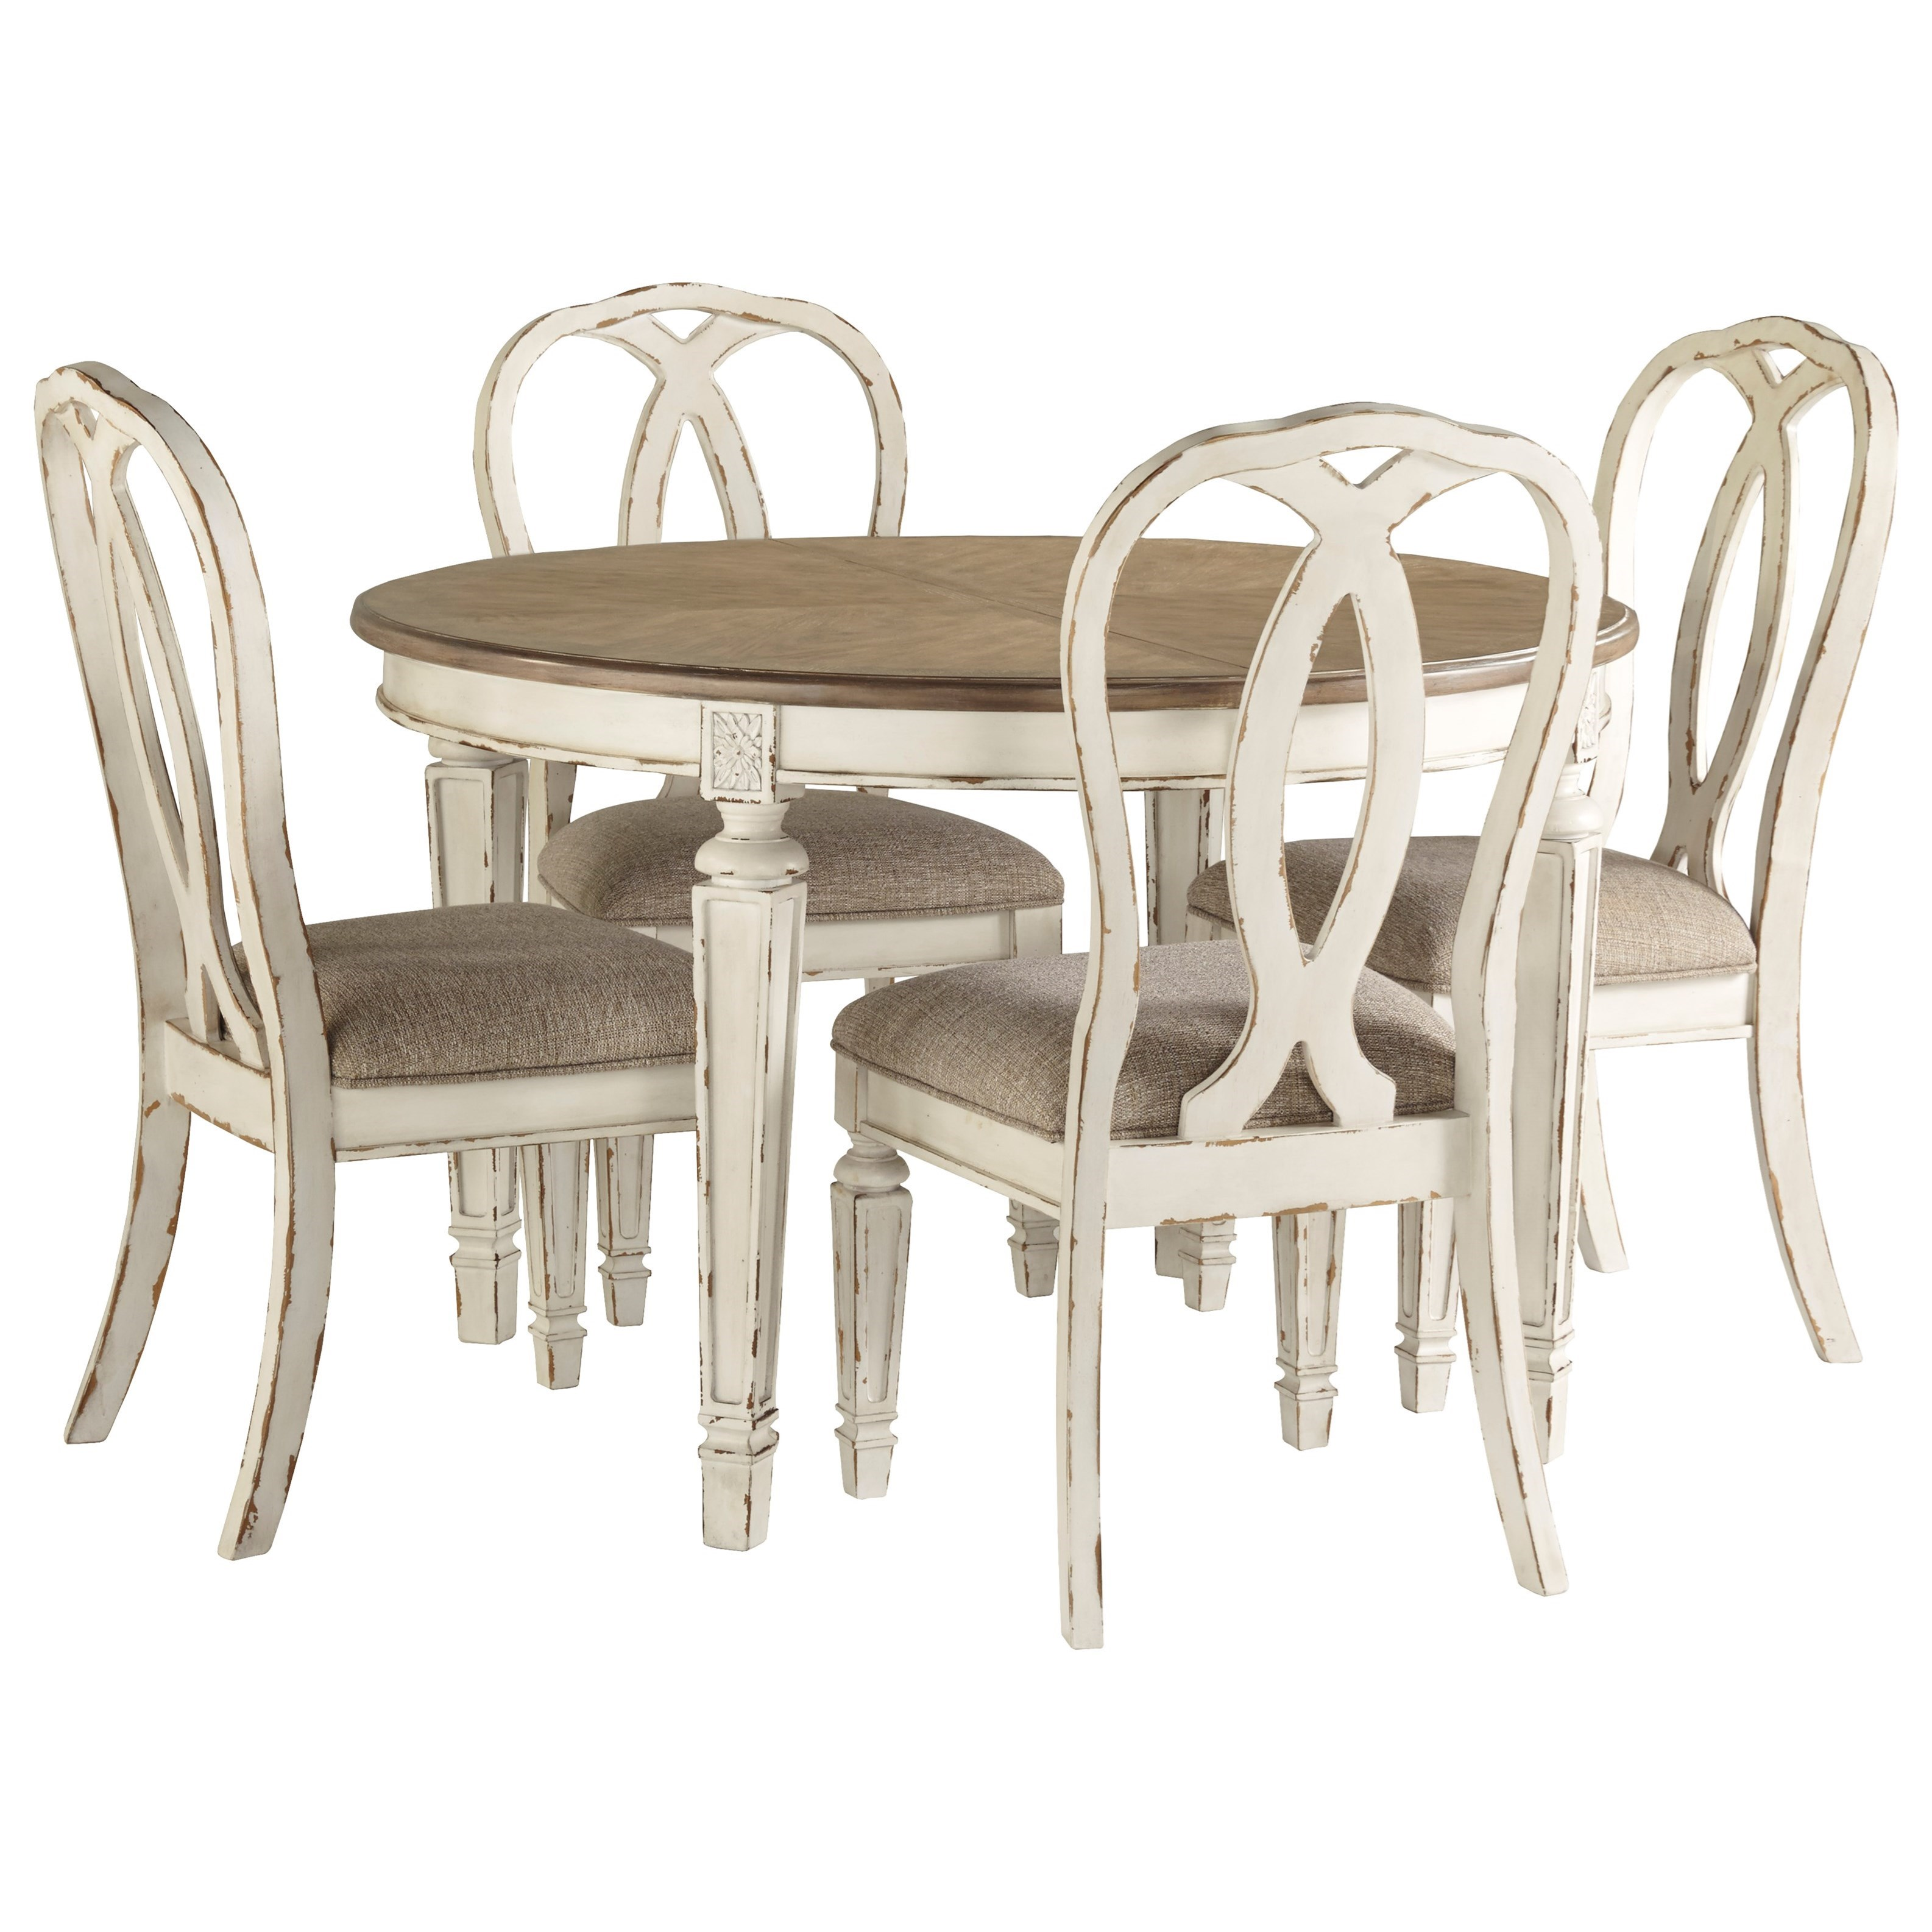 Round Table And Chairs Set: Realyn 5-Piece Round Table And Chair Set